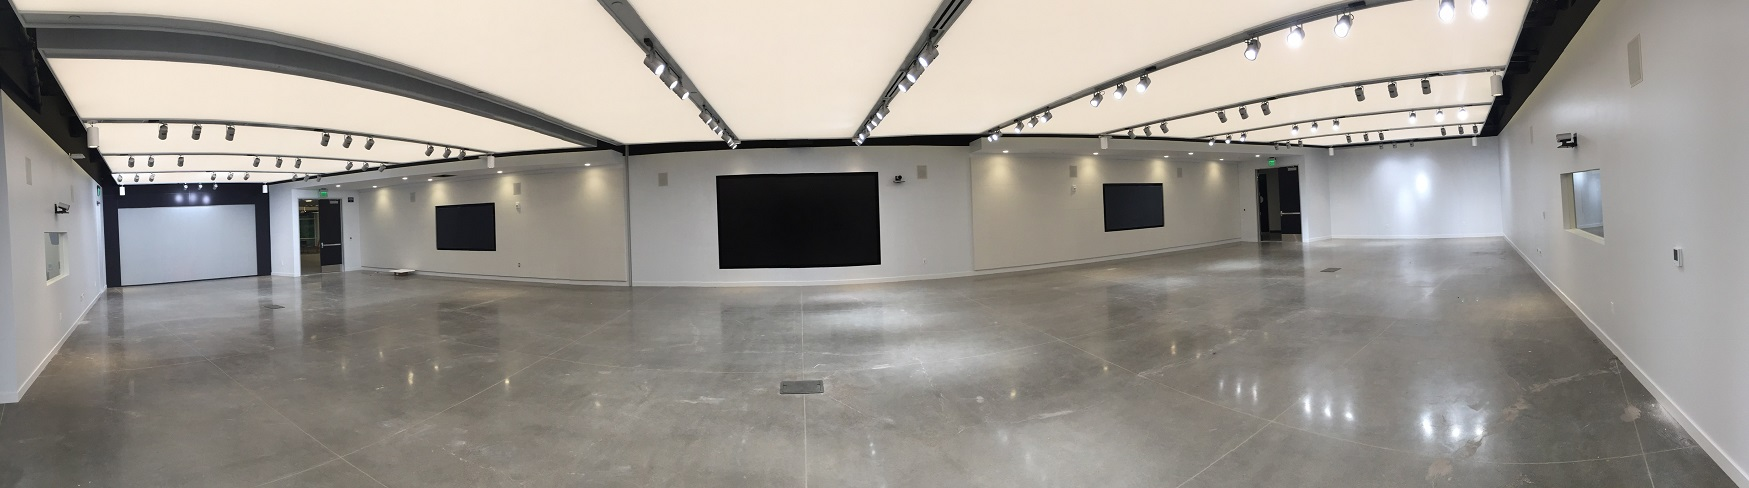 Commercial AV in multi-purpose collaboration space